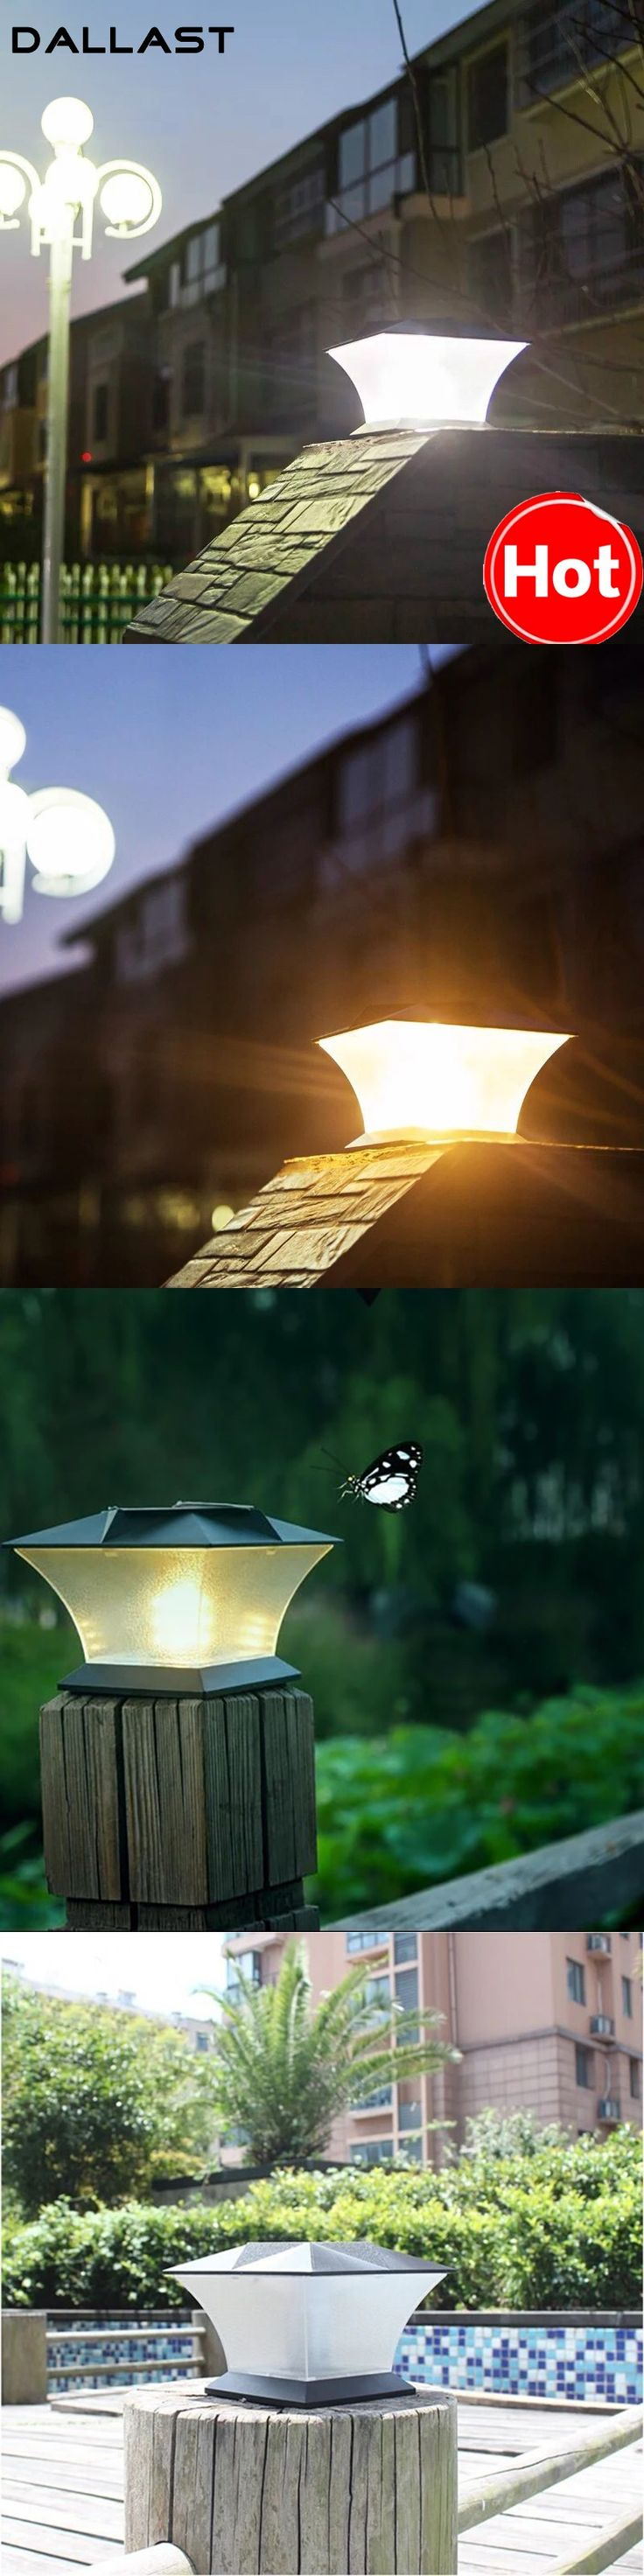 Garden Led Light Solar Panel Lamp Light Sensor Waterproof Mounted Outdoor Stairs Fence Wall Lamp Lighting DALLAST